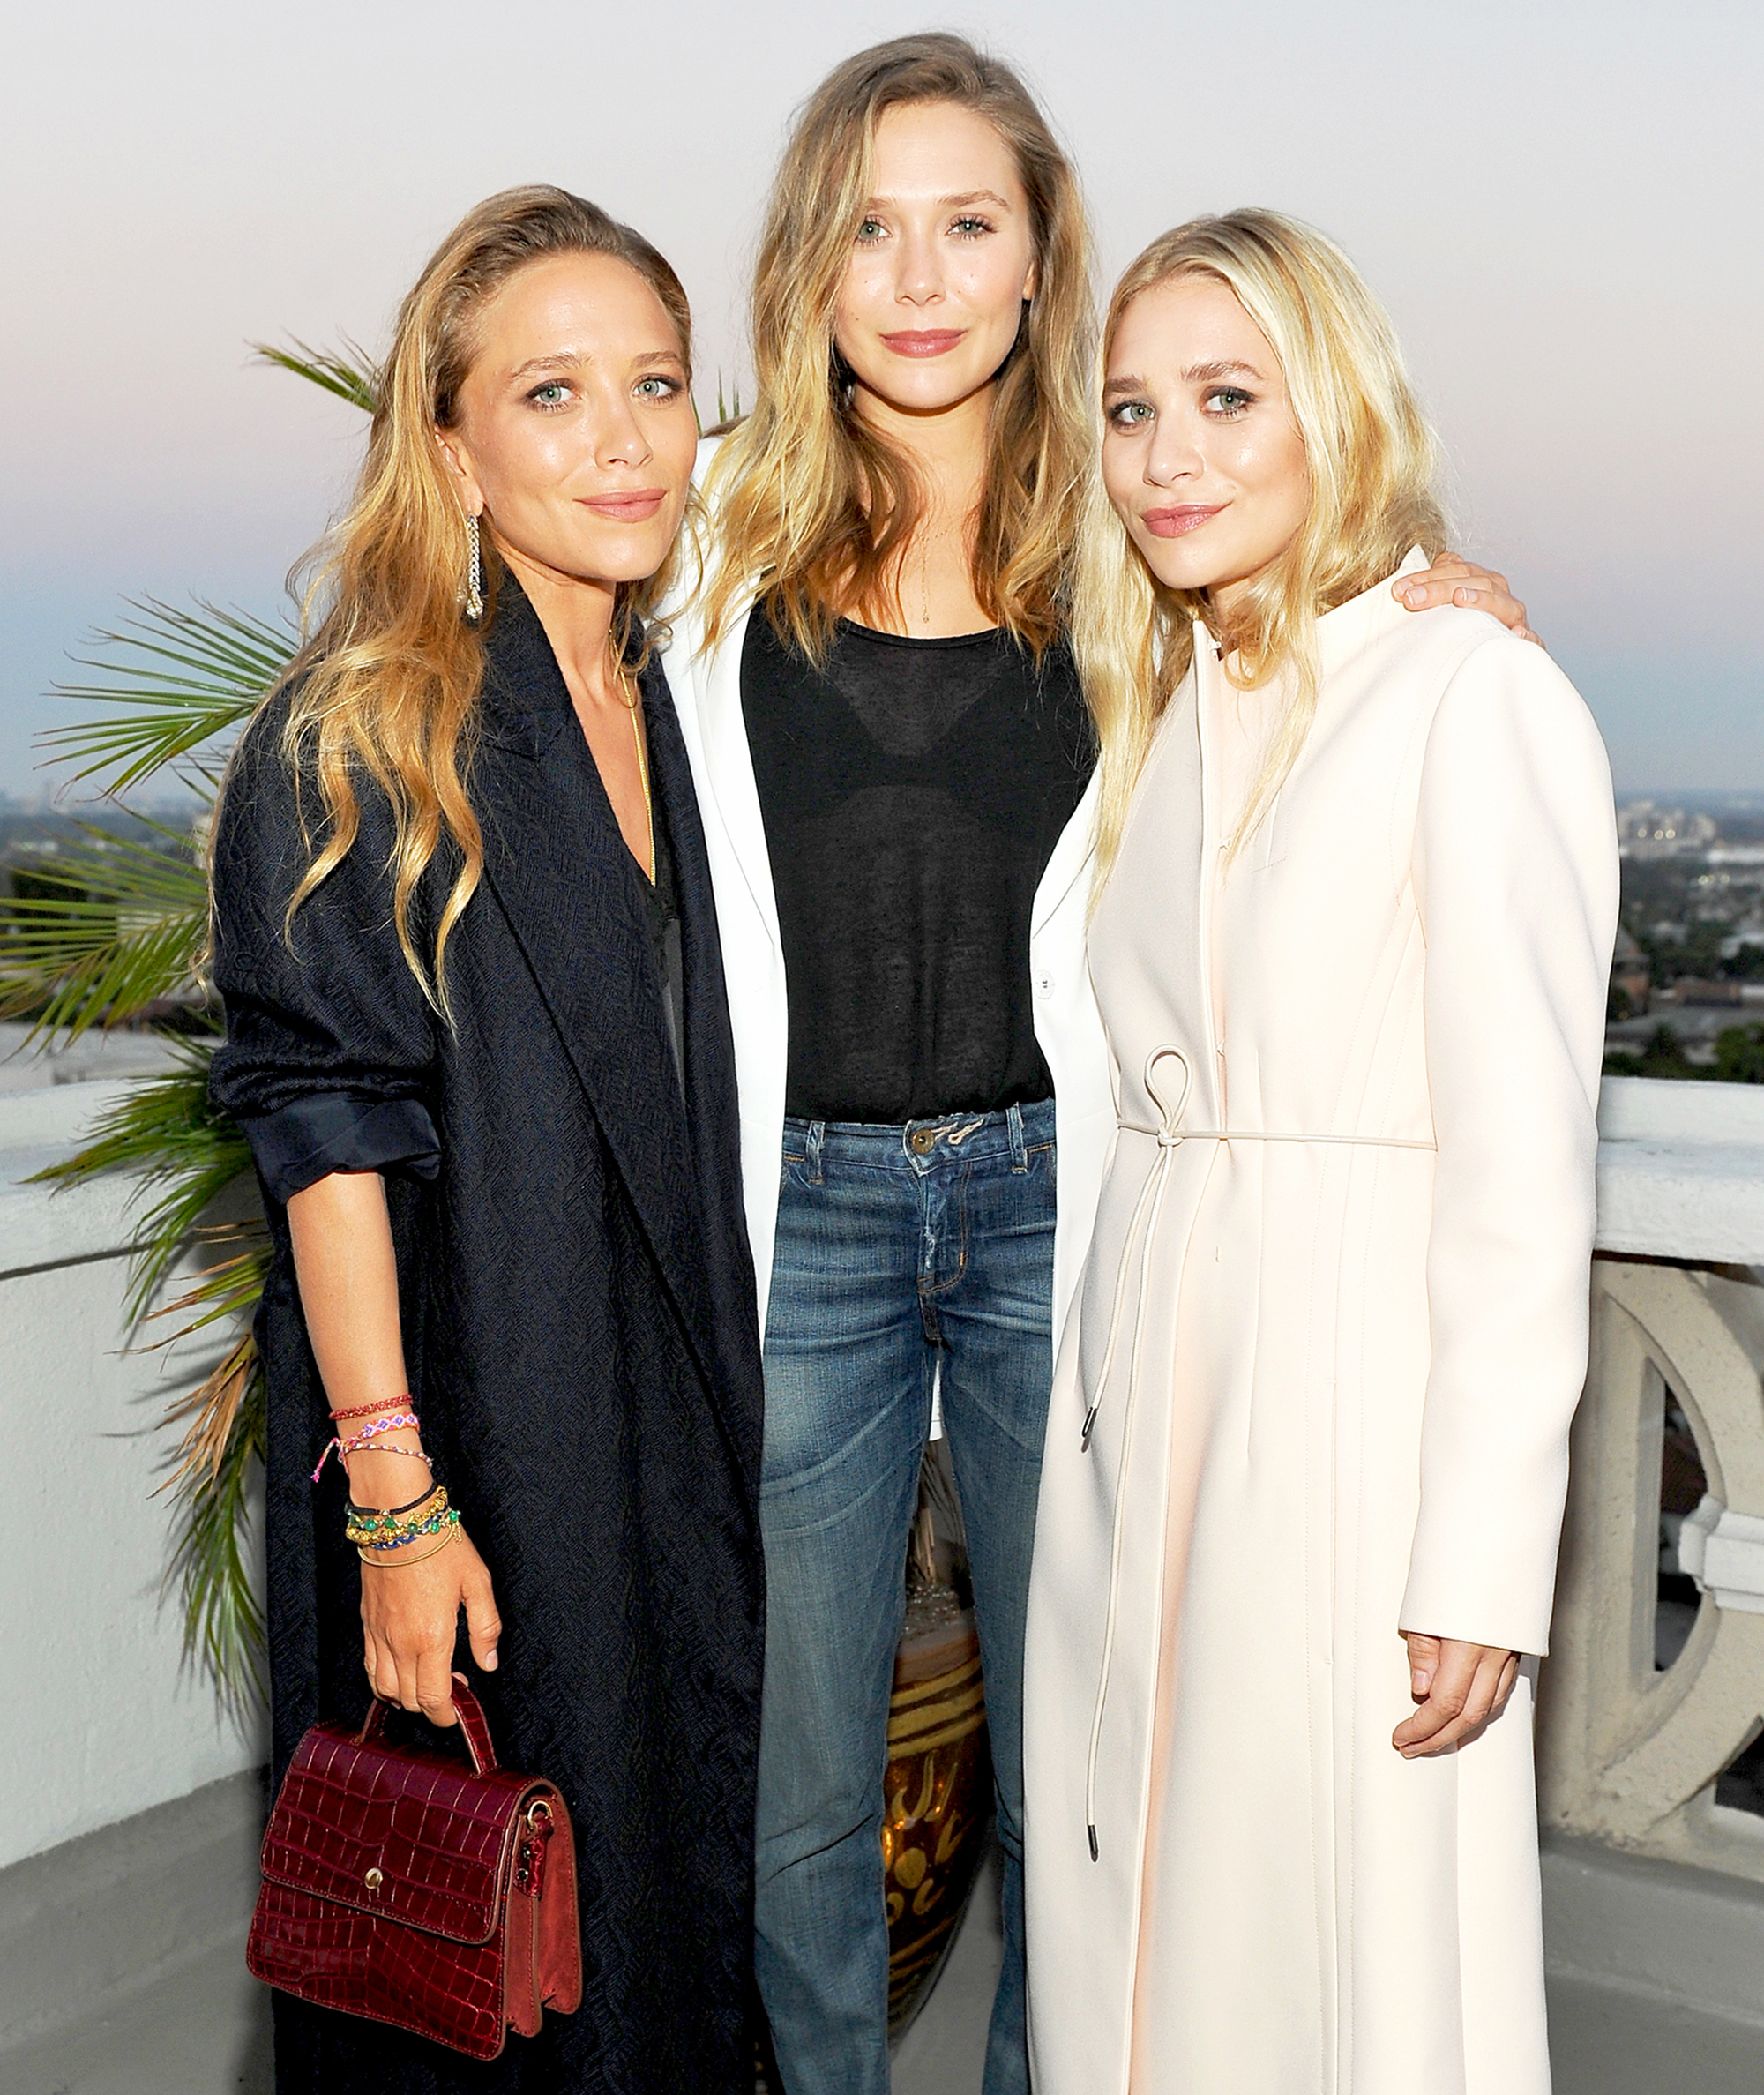 See mary kate and ashley have sex